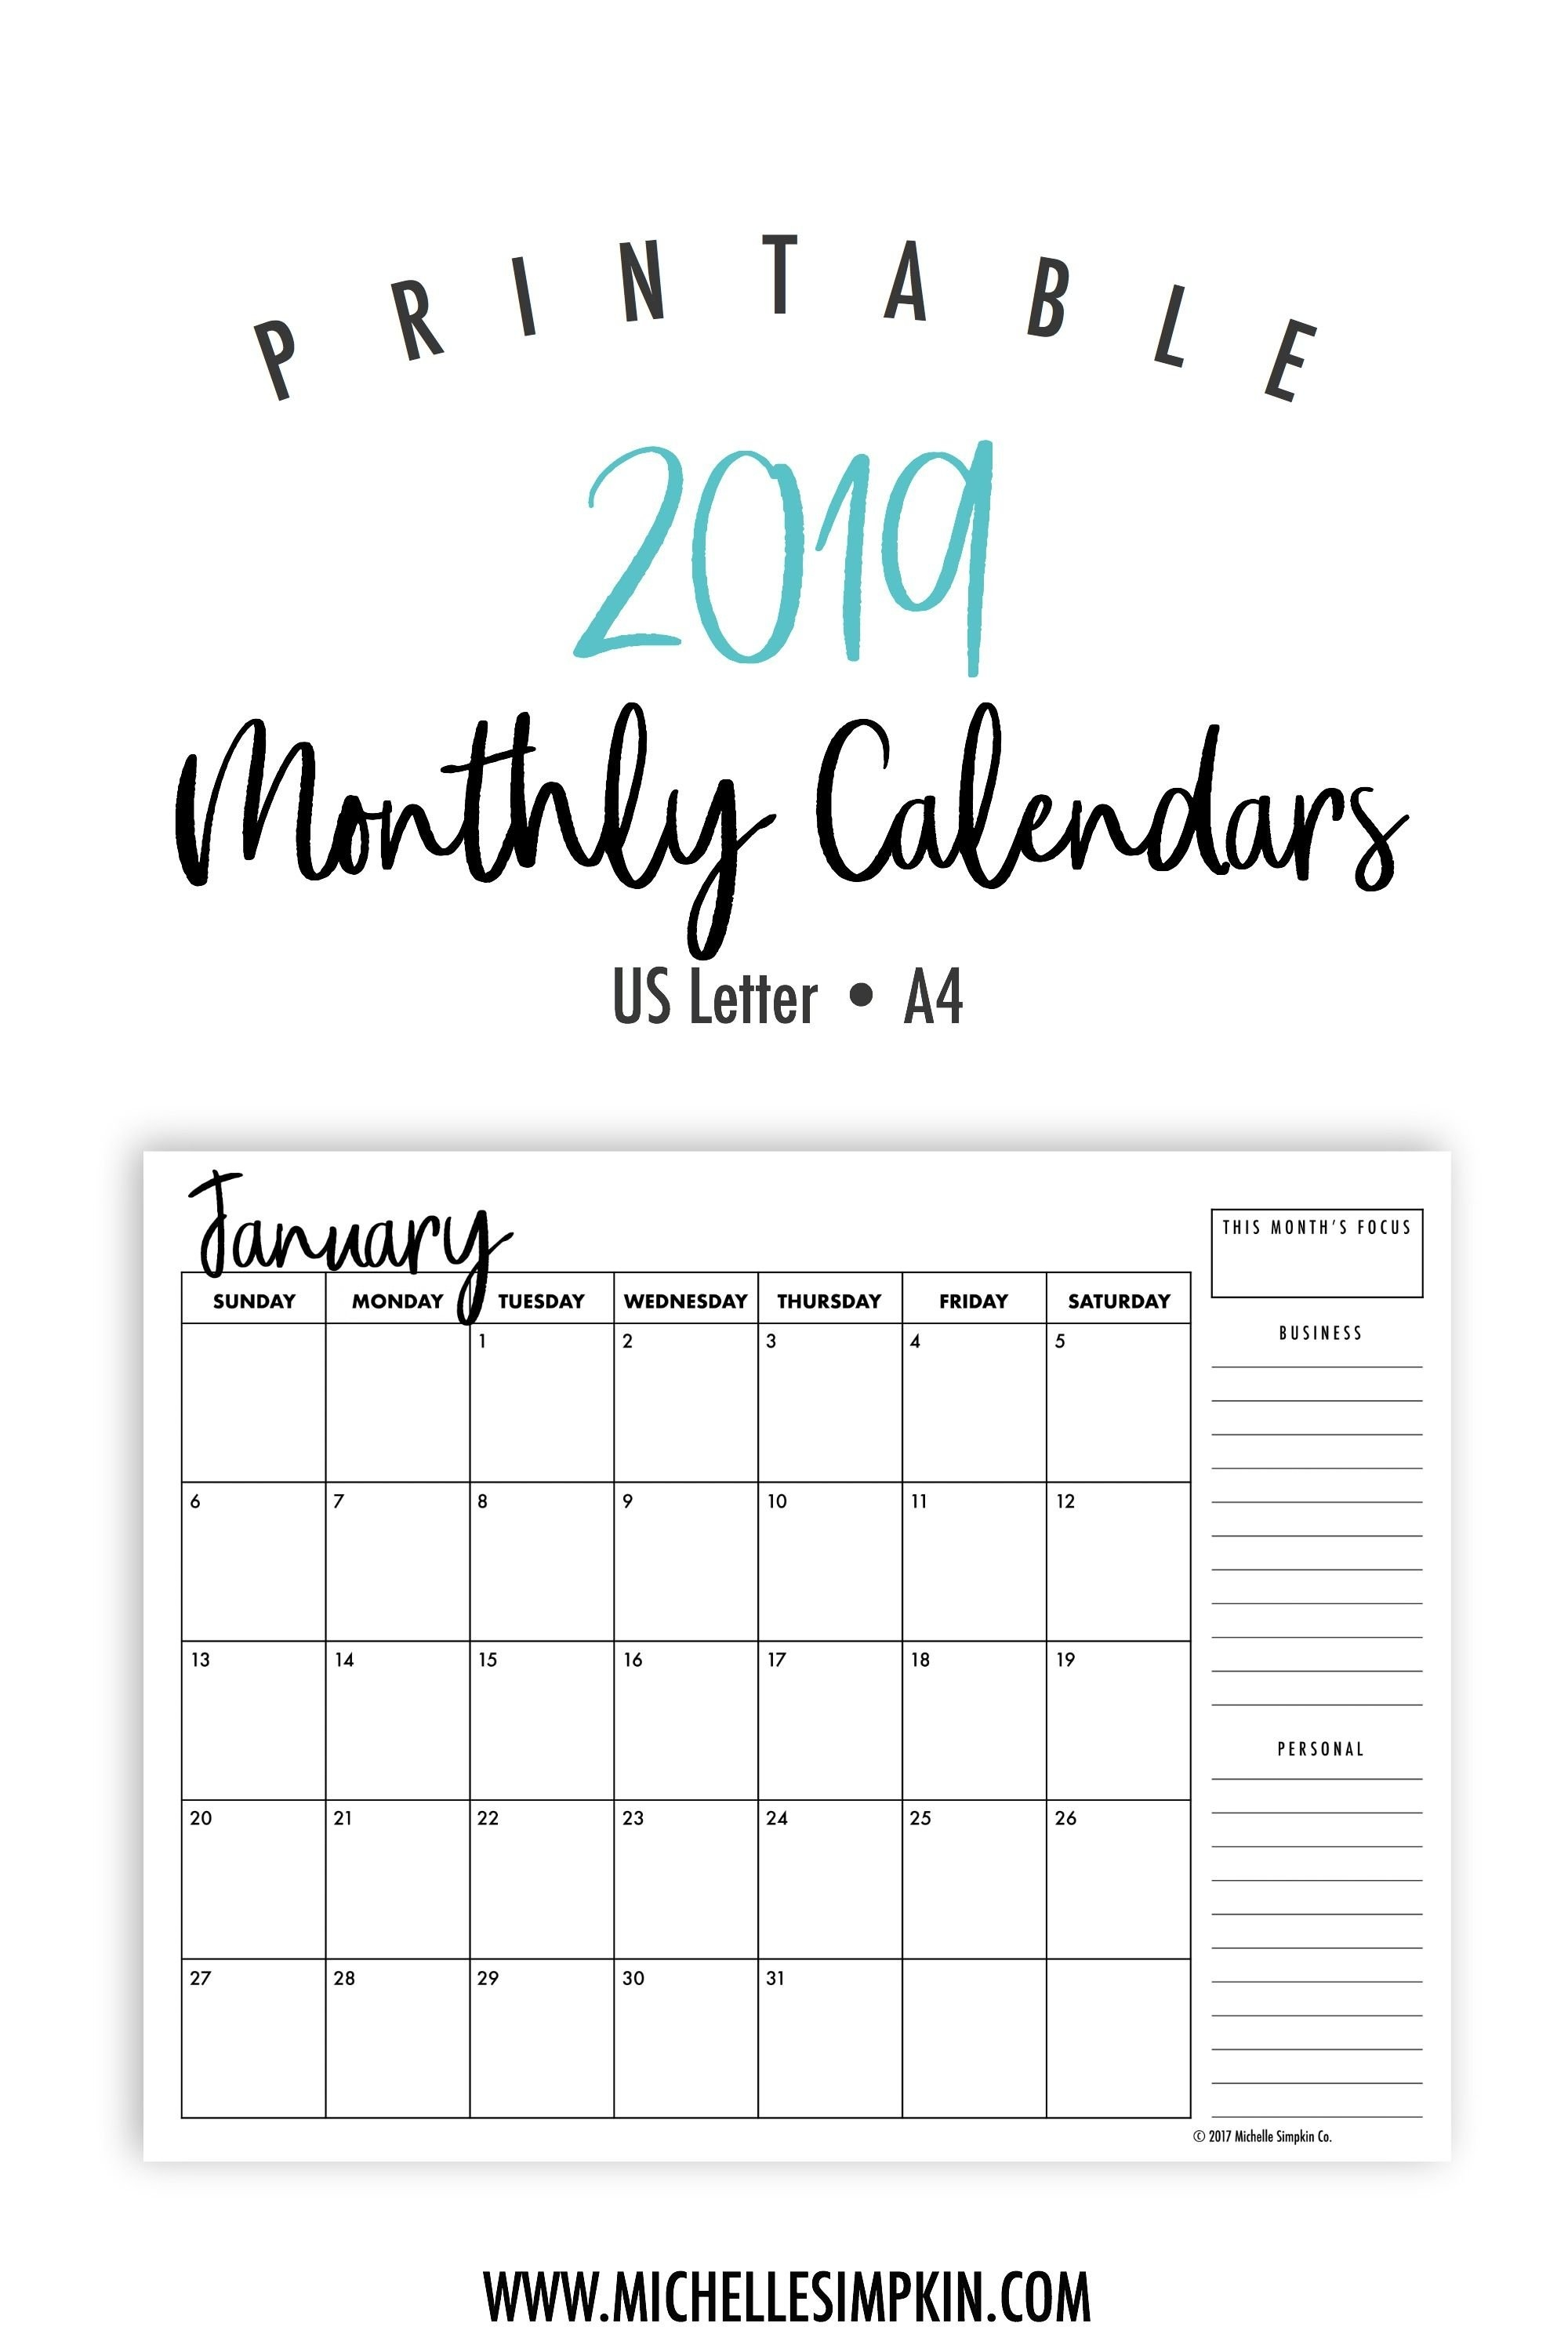 2019 Printable Calendars - Plan Out Next Year With These Ink Calendar 2019 Print